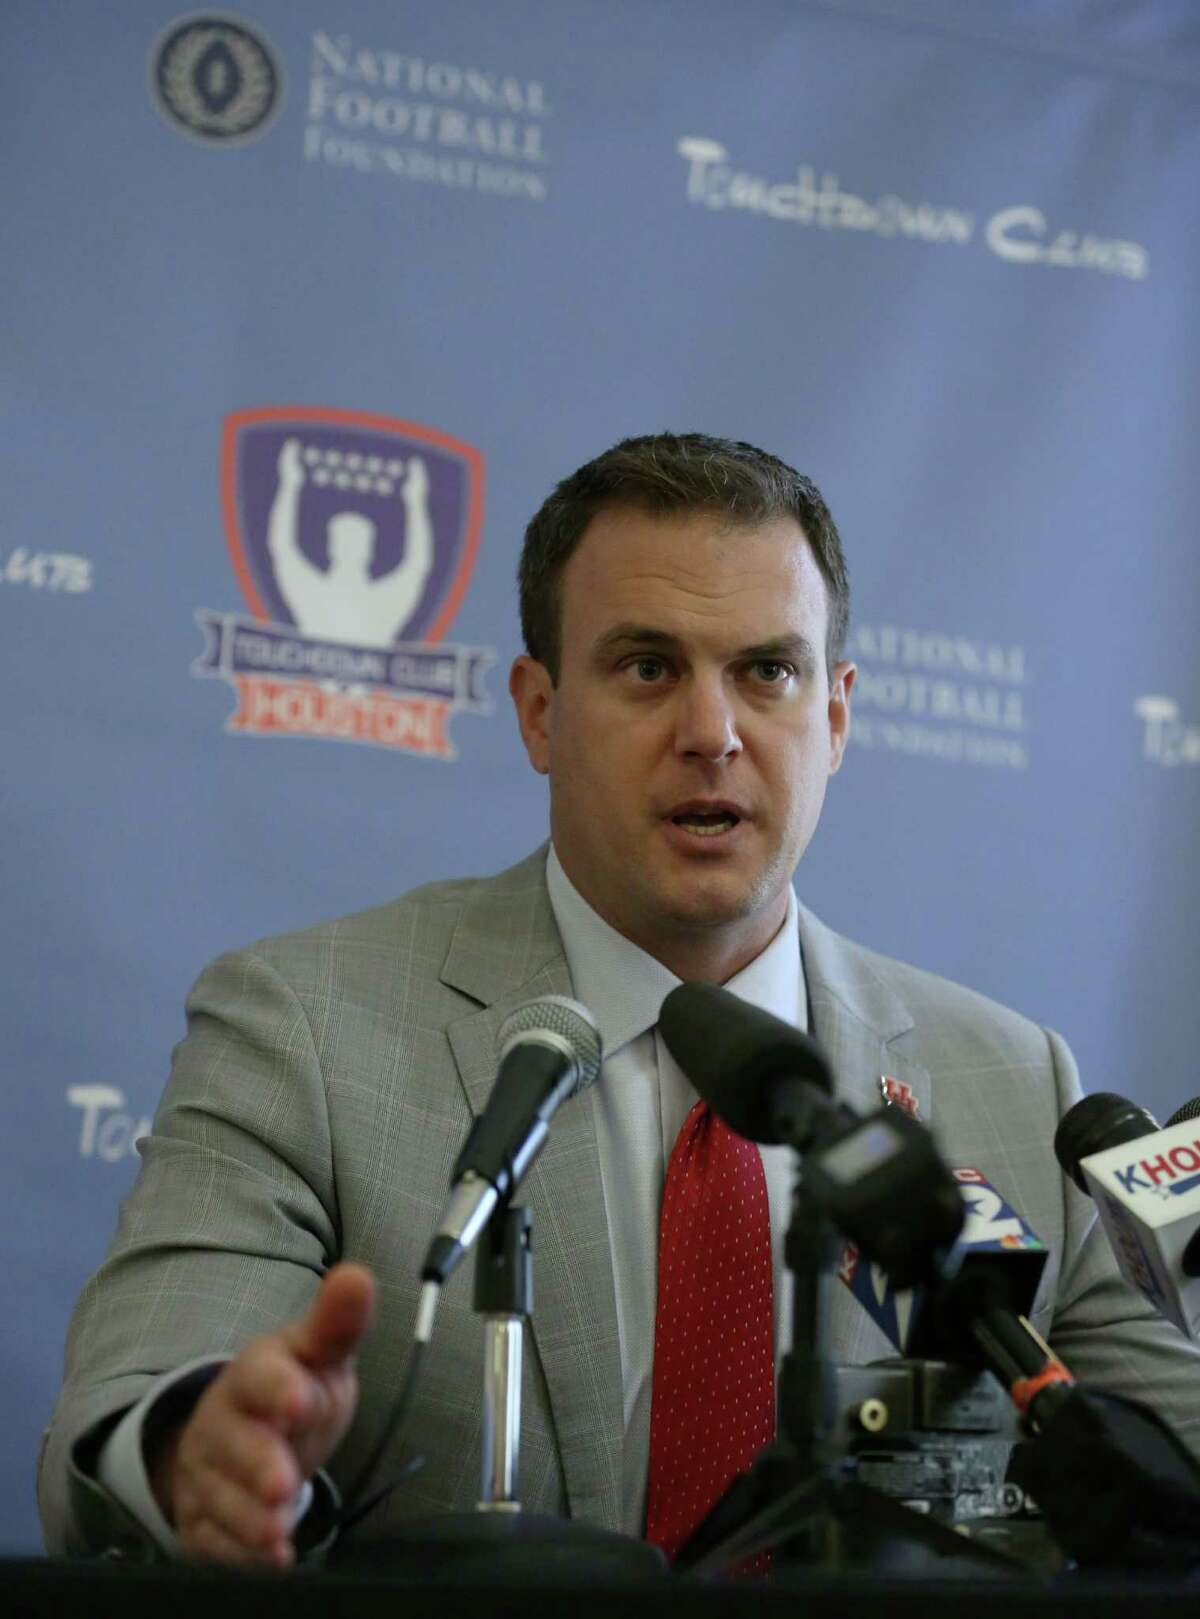 University of Houston Head Football Coach Tom Herman speaks during a press conference before a meeting of the Touchdown Club of Houston Wednesday, July 29, 2015, in Houston. Jon Shapley / Houston Chronicle )